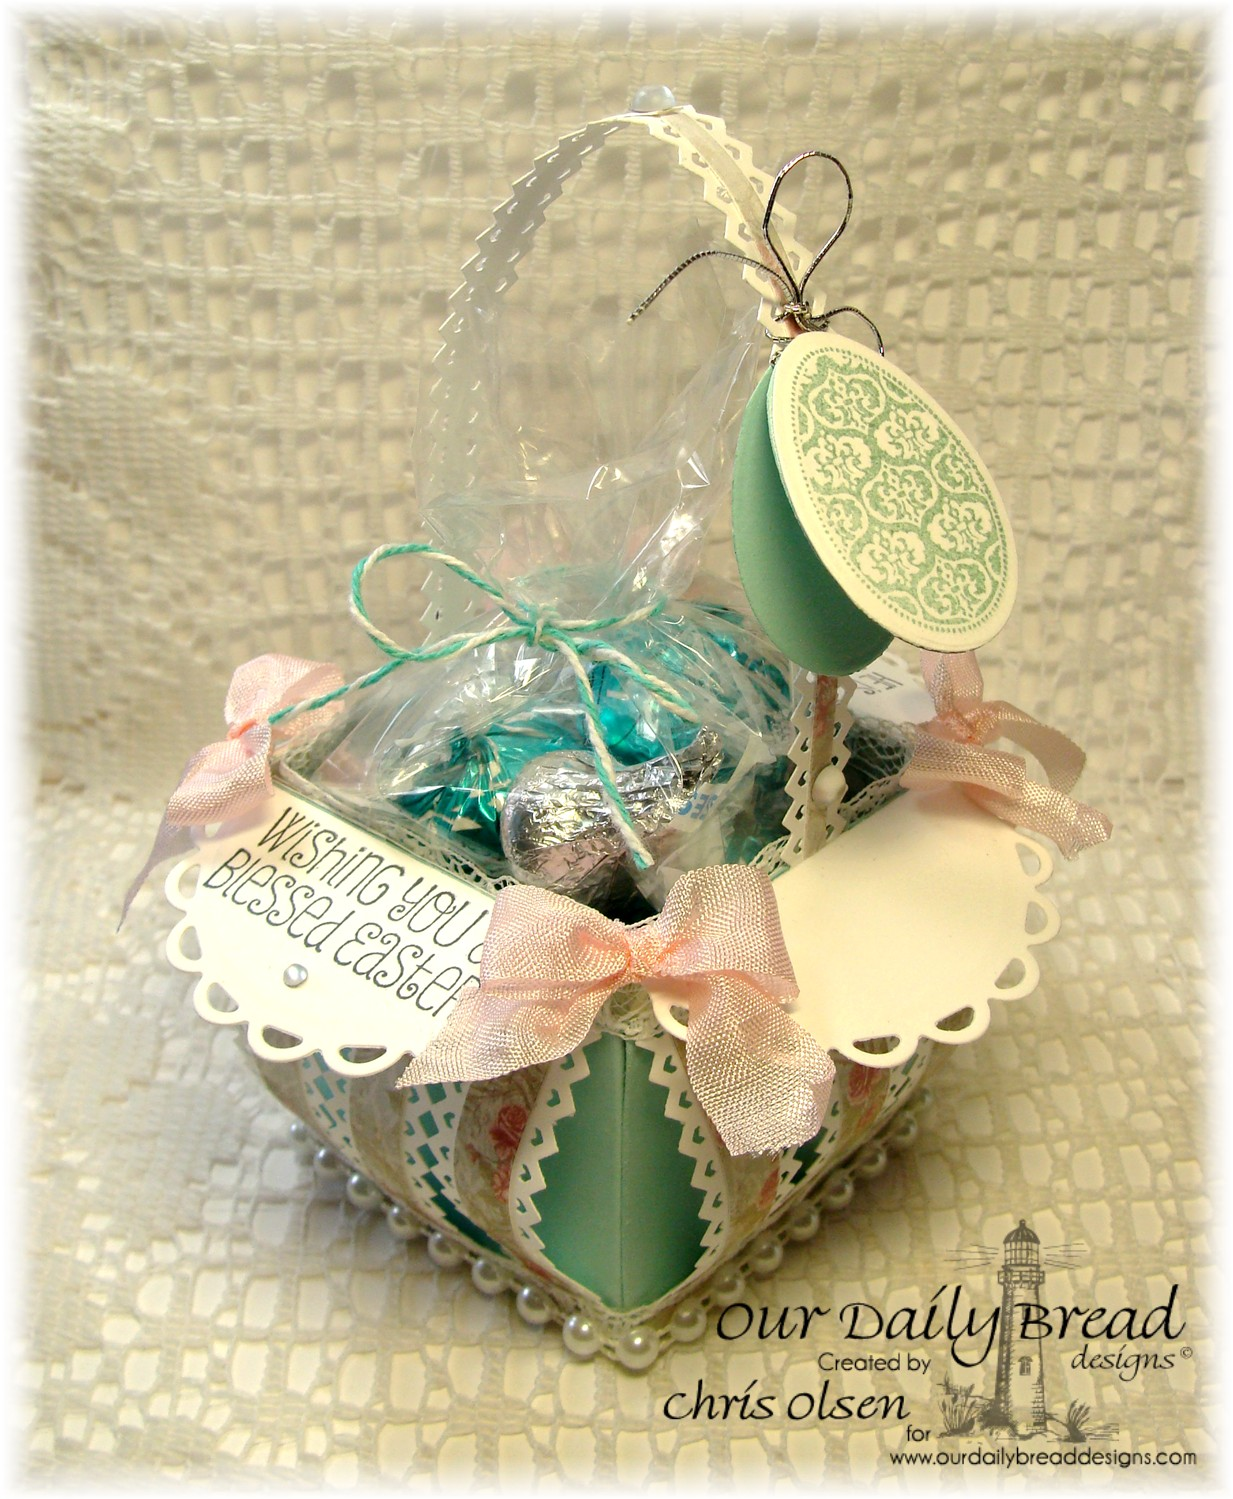 Stamps - Our Daily Bread Designs Blessed Easter, ODBD Custom Eggs Die, ODBD Shabby Rose Paper Collection